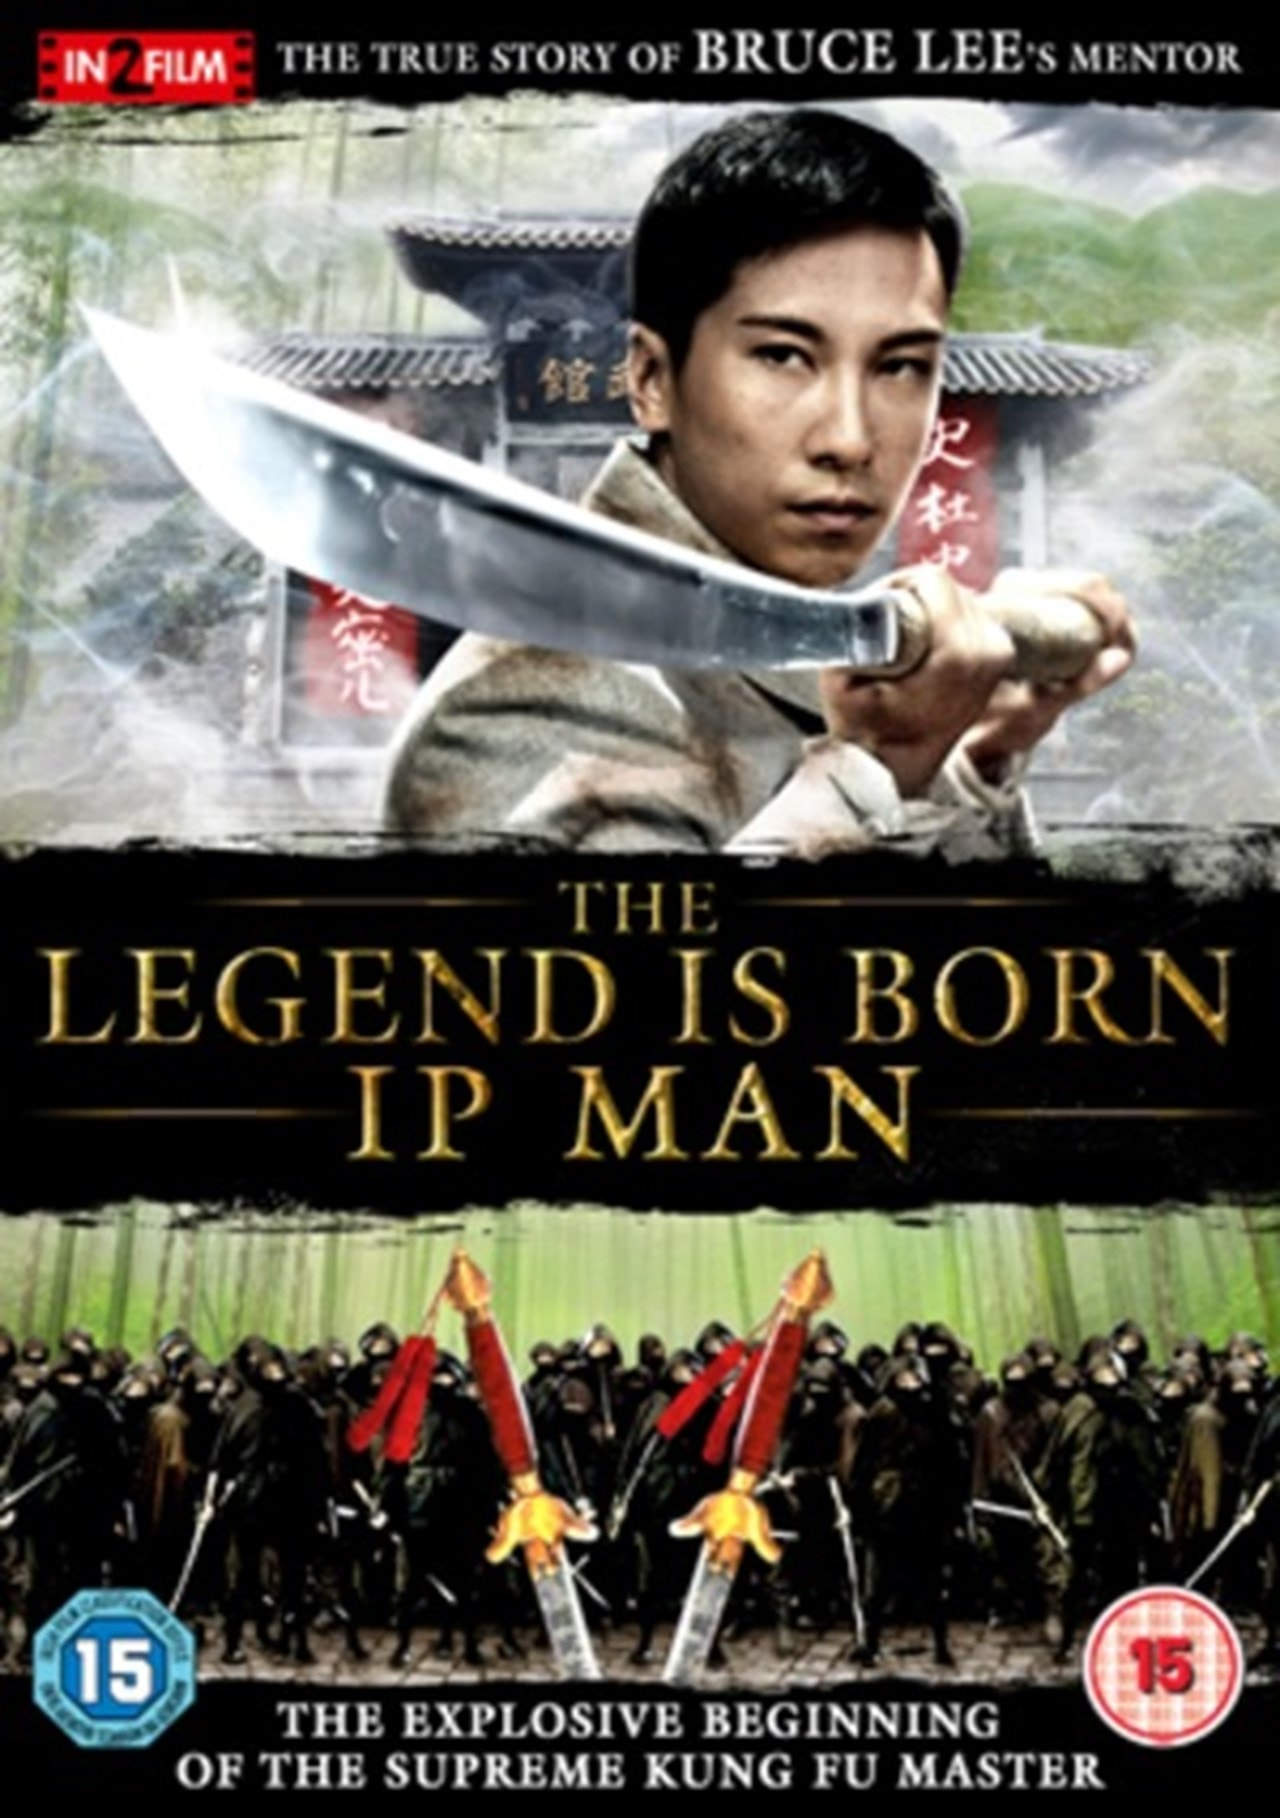 The Legend Is Born - Ip Man - 1